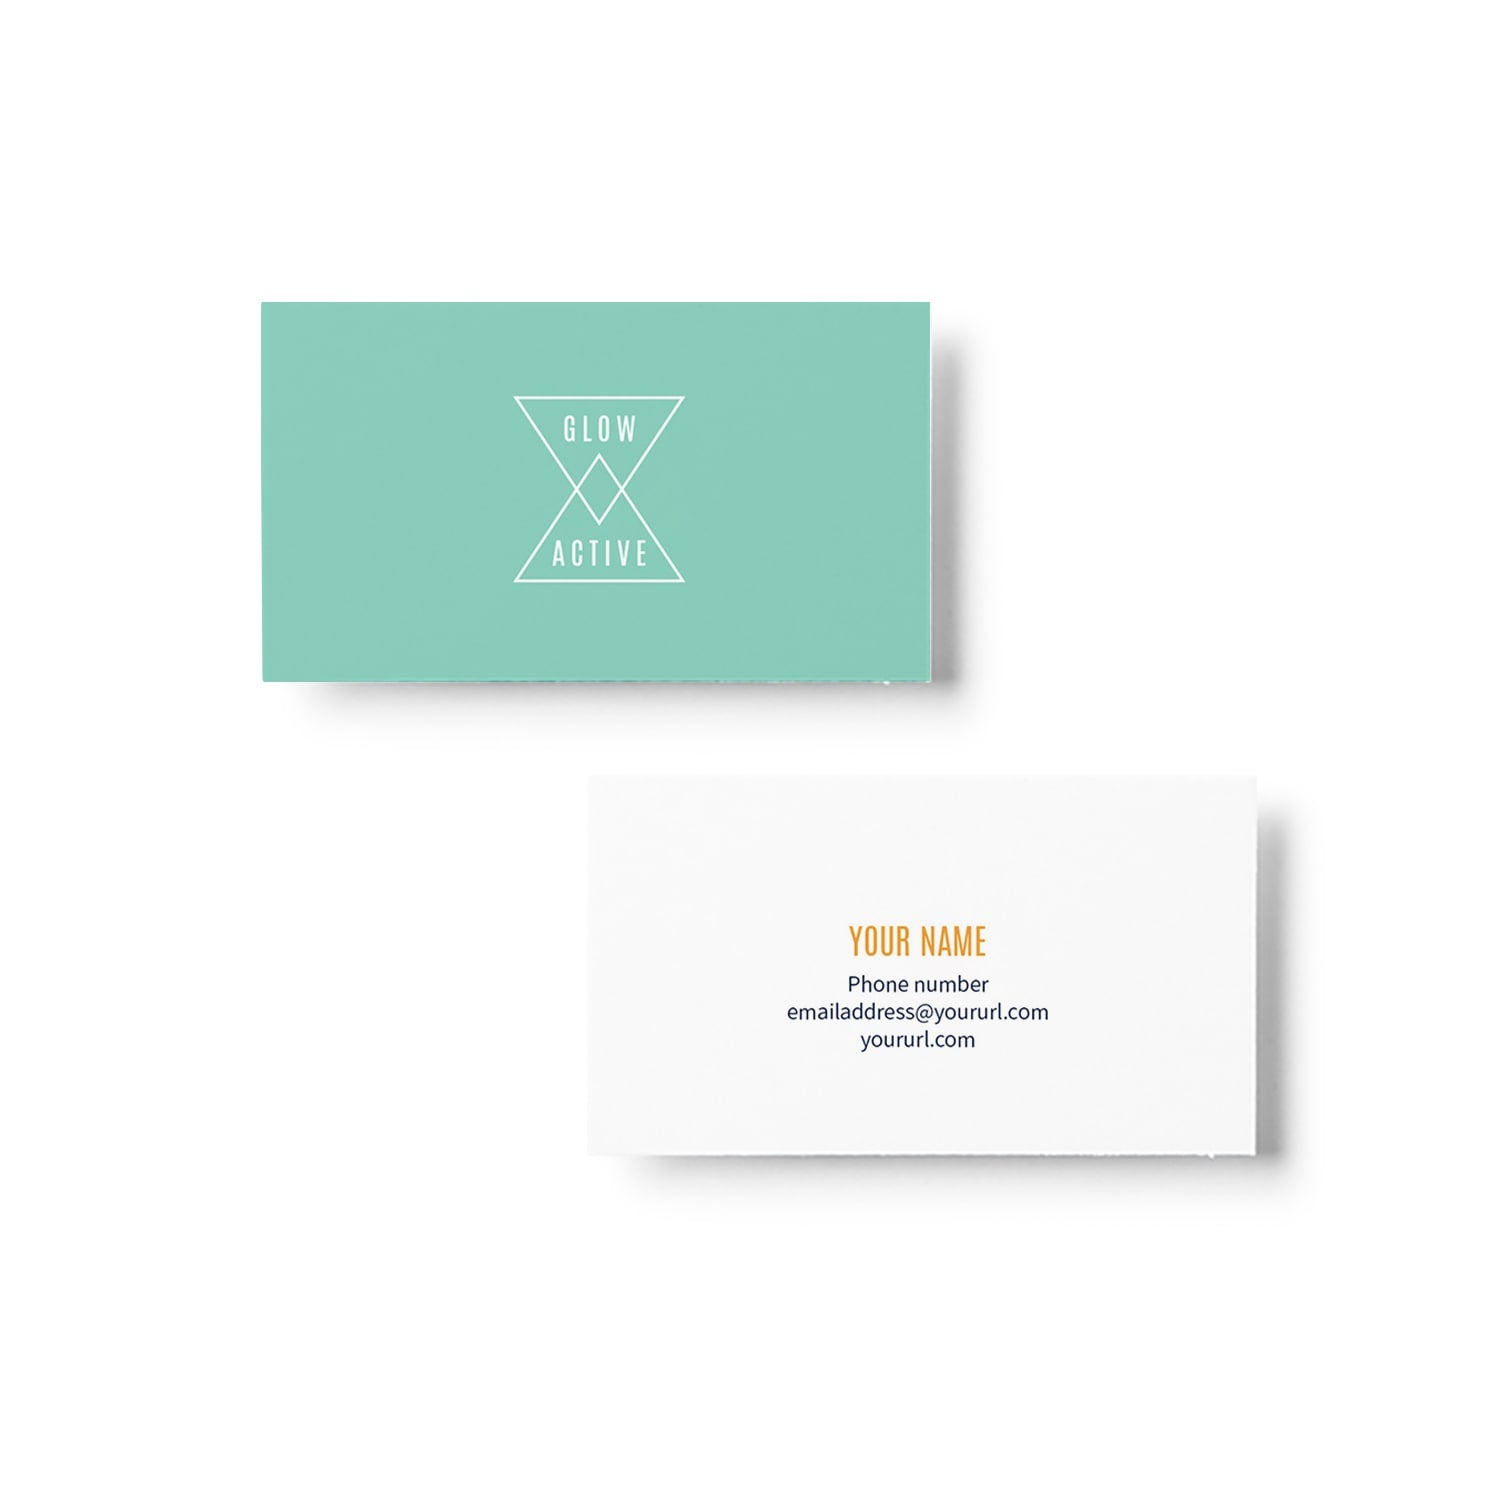 Glow Active Business Card Design_Copyright Tiny Crowd